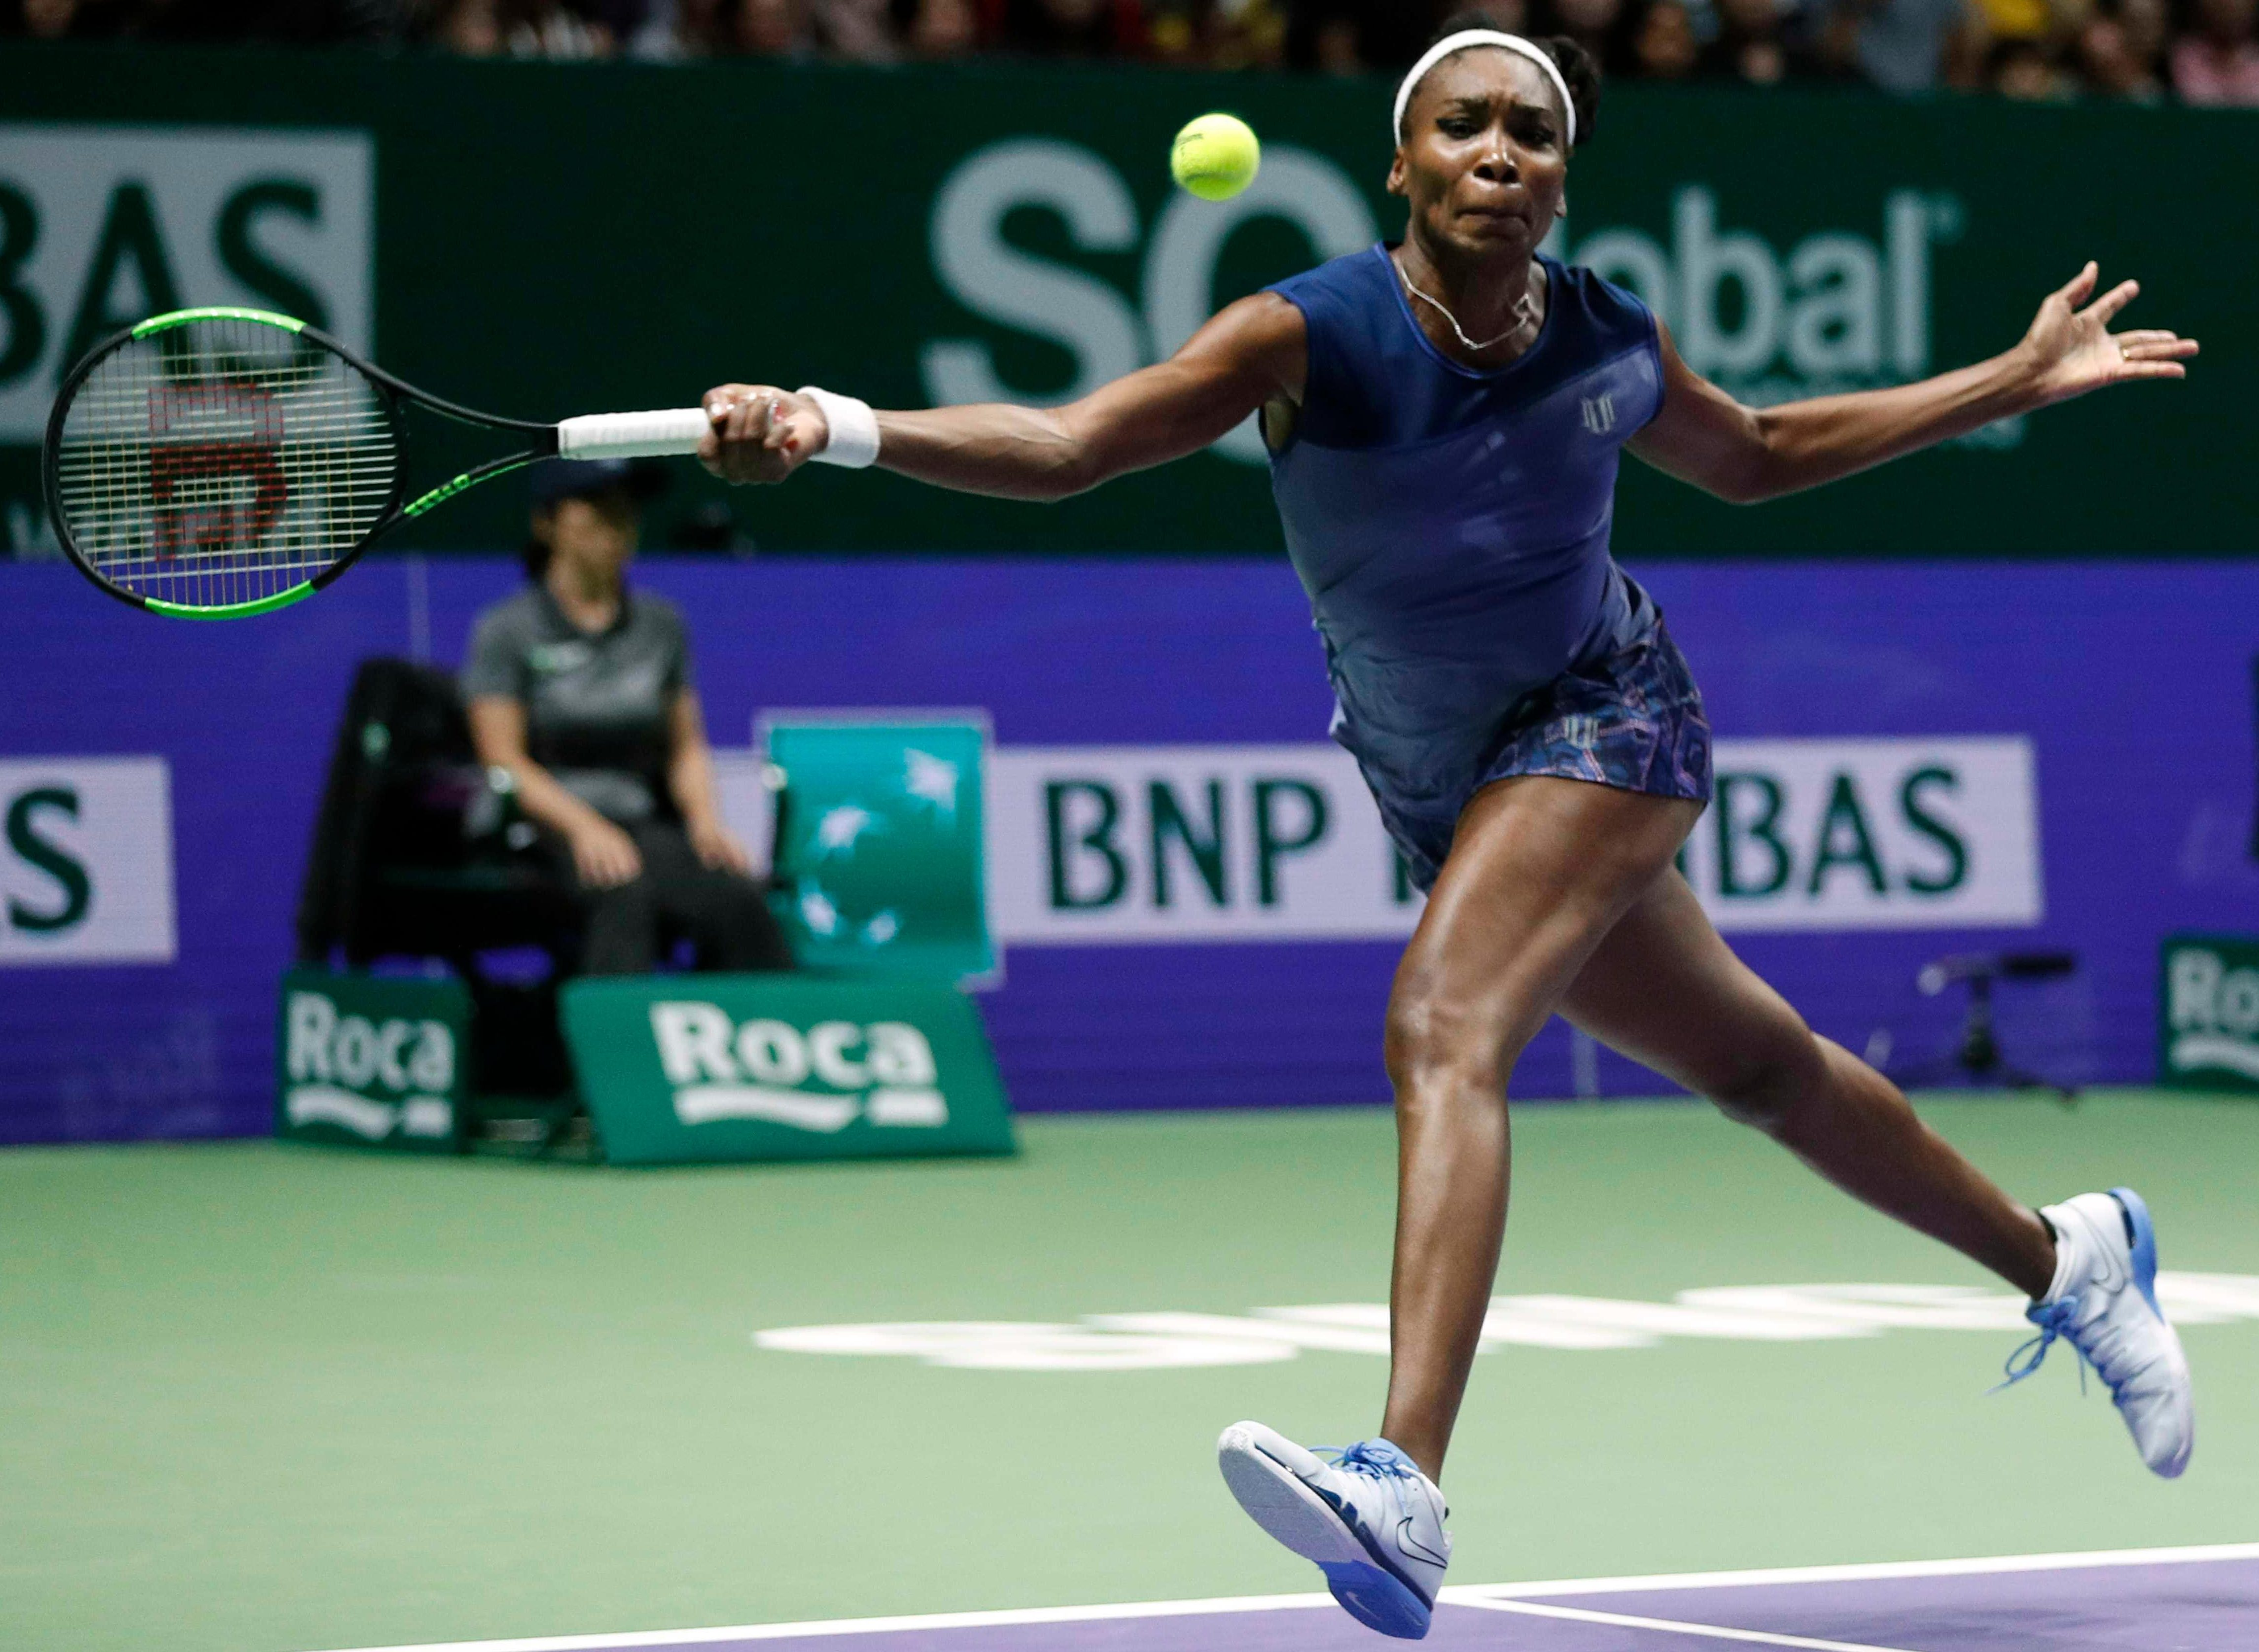 Williams made a great effort to make the final but couldn't match her Danish opponent on the day